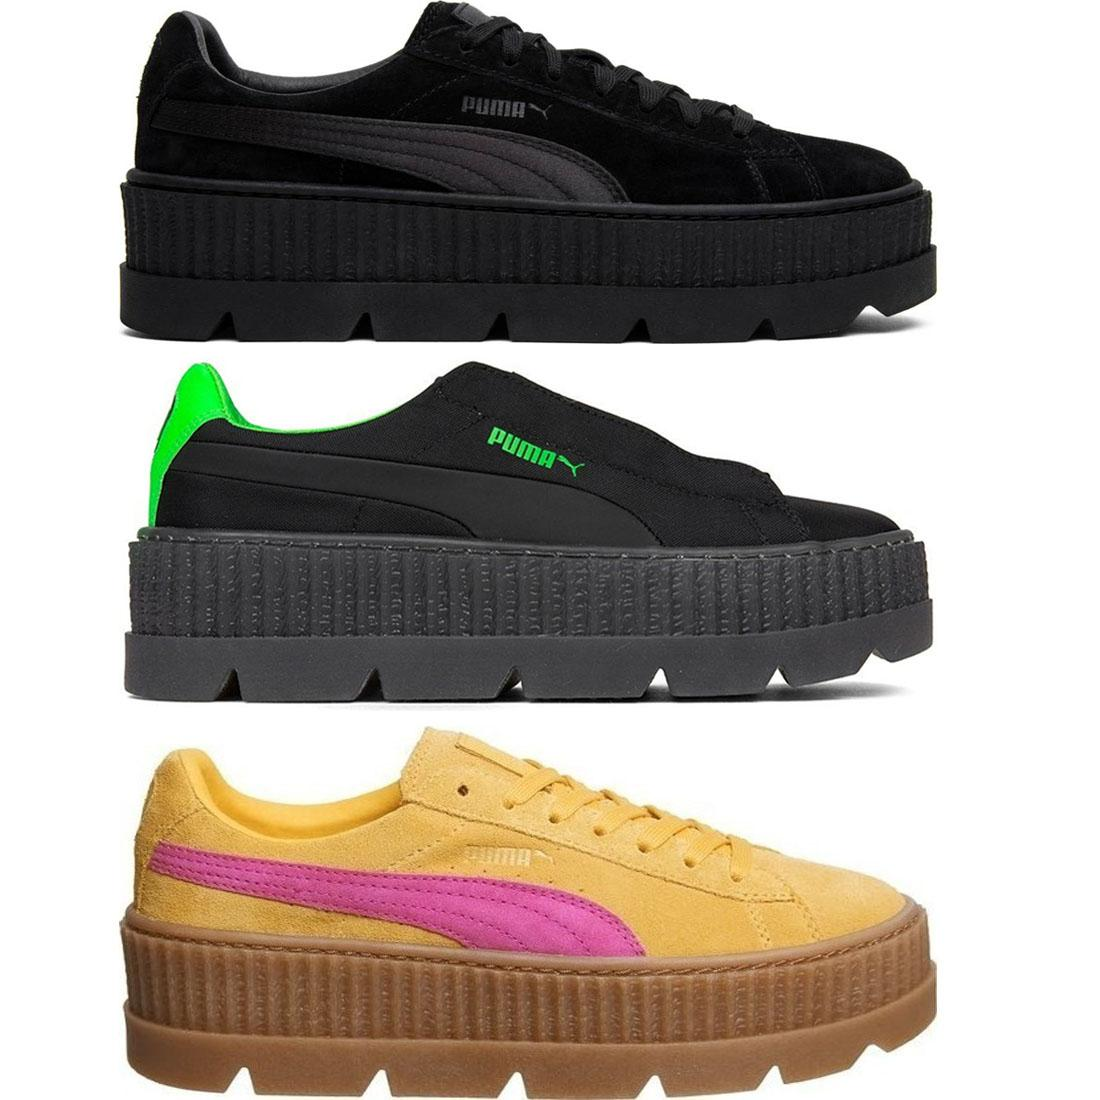 59854fb7916e91 Details about PUMA Fenty X Rihanna Cleated Creeper Ladies Suede Black Green  Yellow Trainers